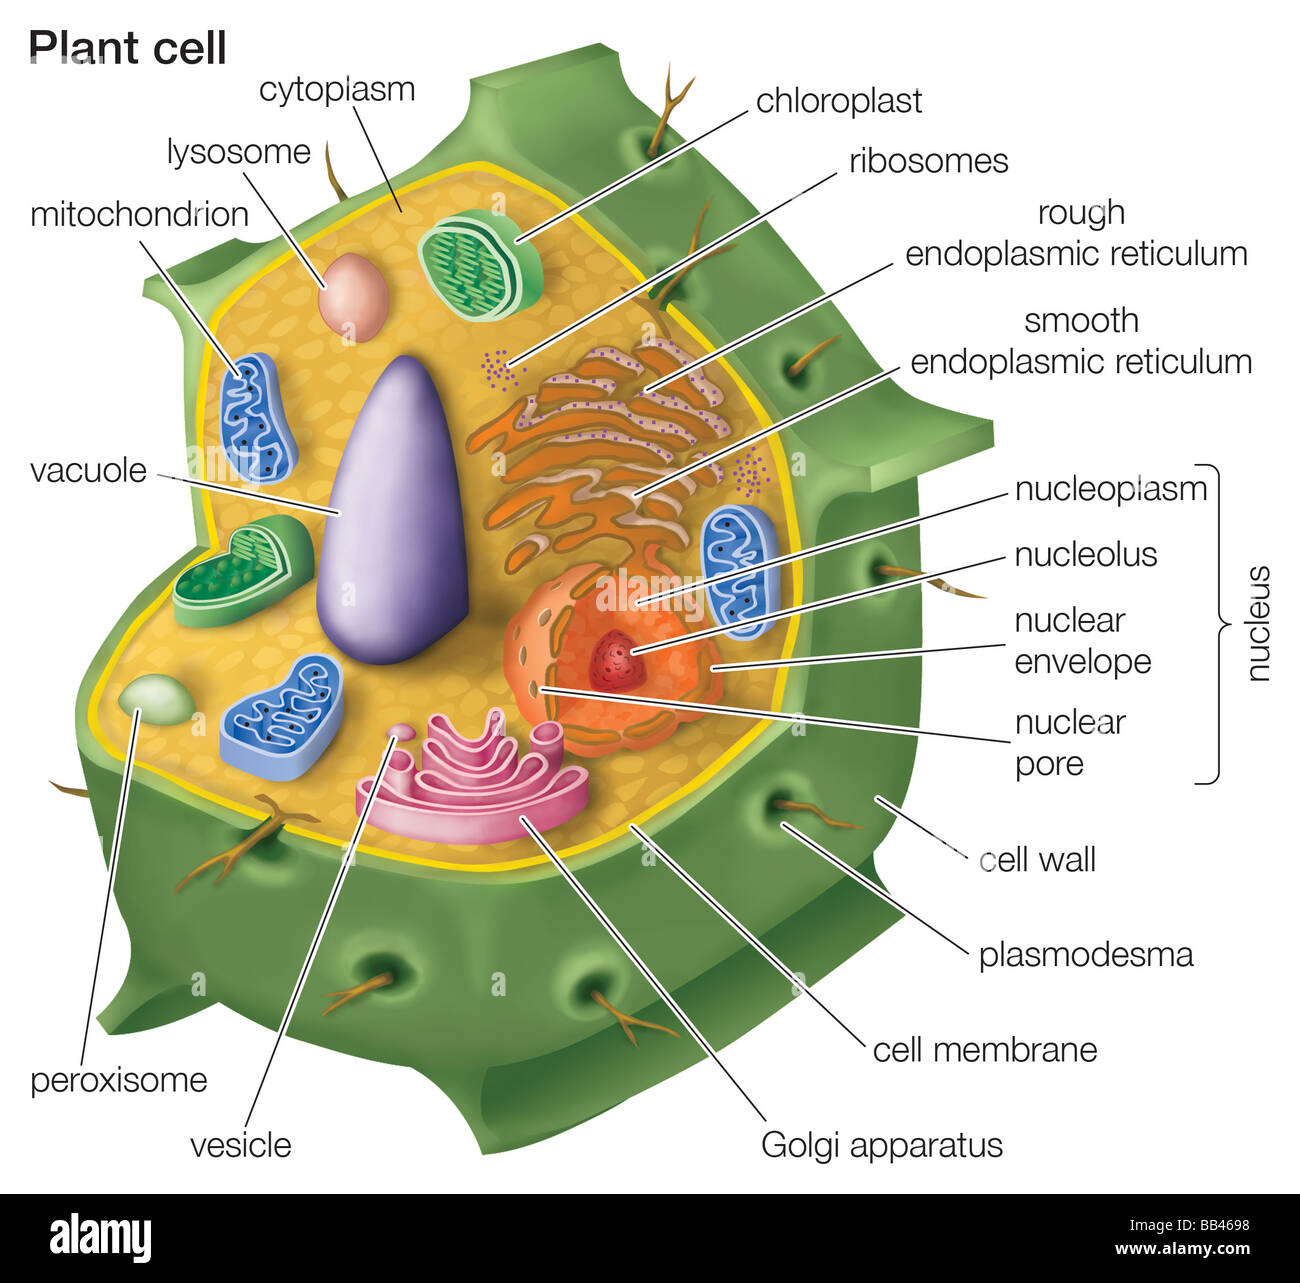 cutaway drawing of a eukaryotic plant cell stock photo 24064356 alamy